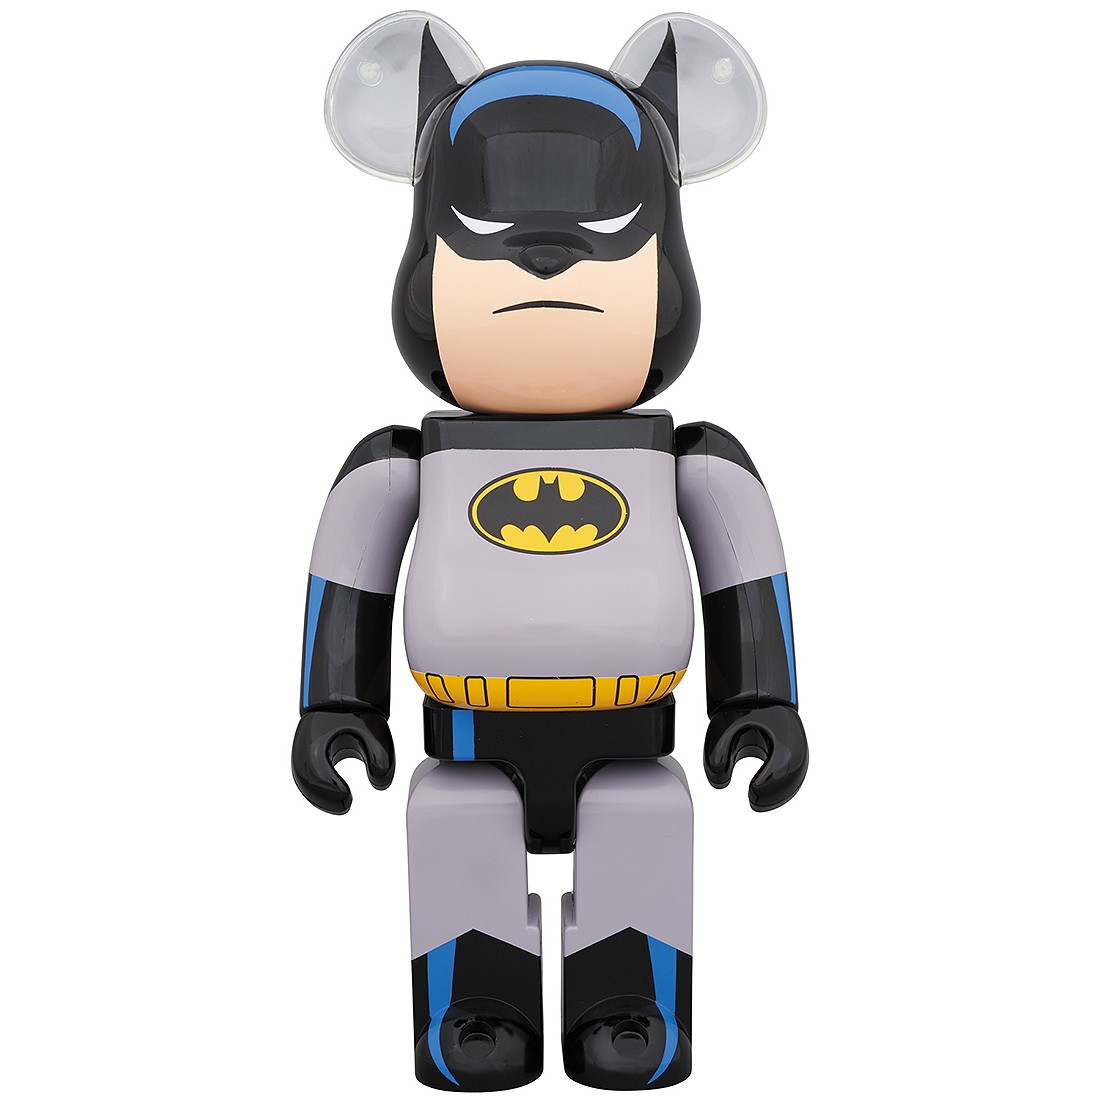 PREORDER - Medicom Batman Animated 1000% Bearbrick Figure (gray)